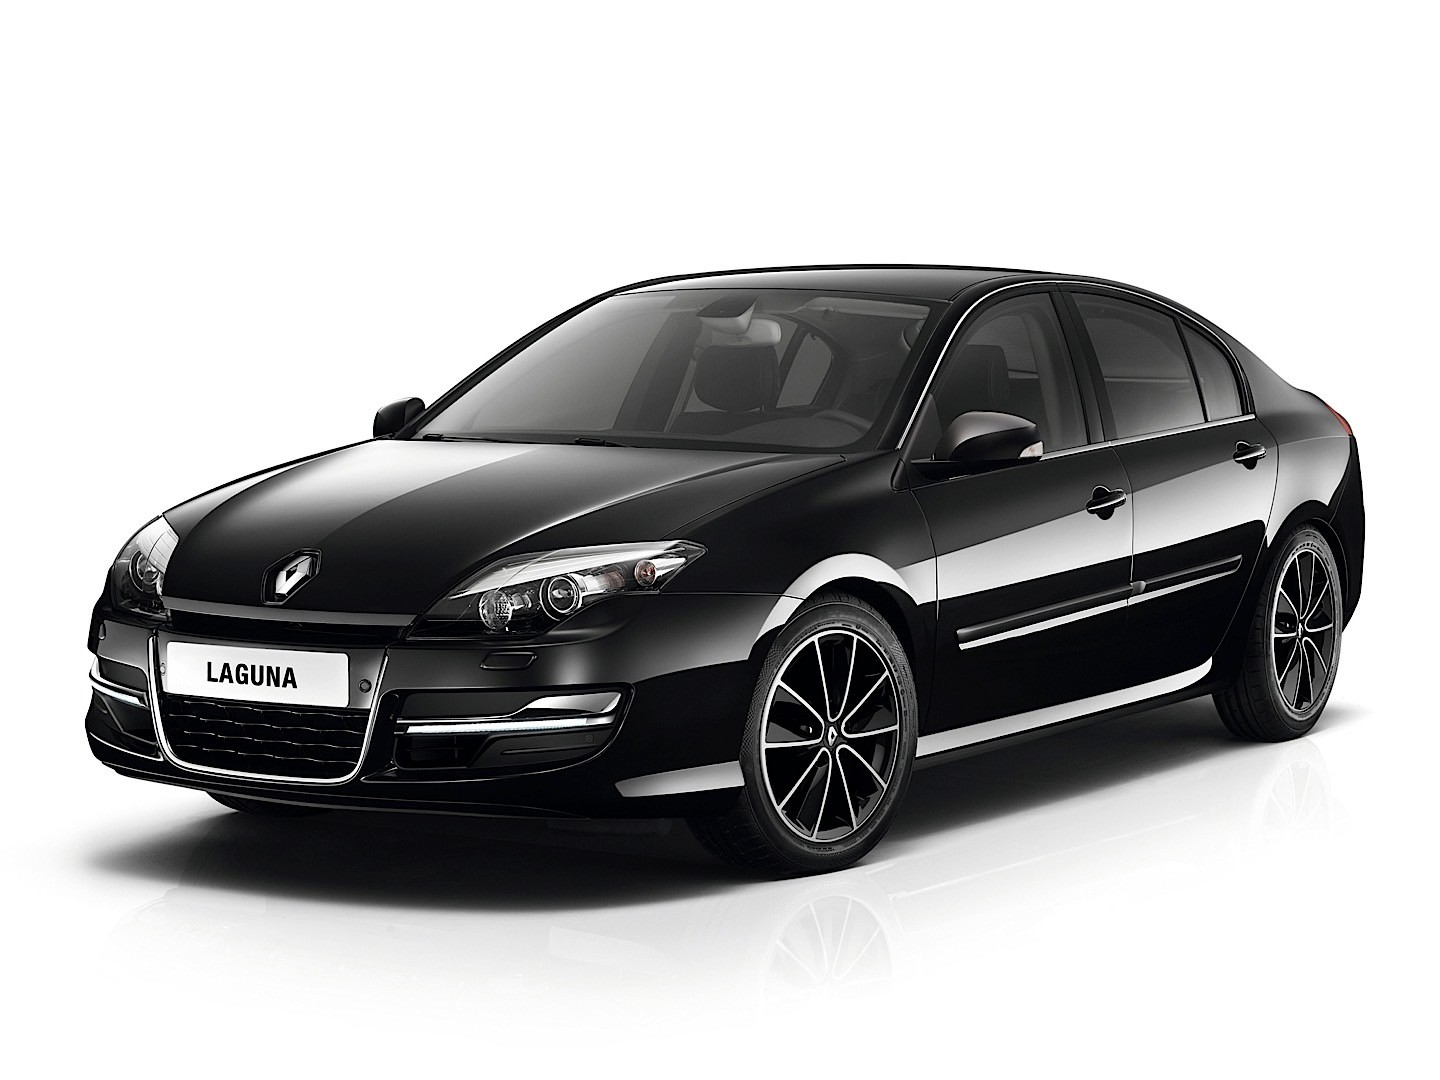 renault laguna specs 2010 2011 2012 2013 2014 2015 2016 autoevolution. Black Bedroom Furniture Sets. Home Design Ideas